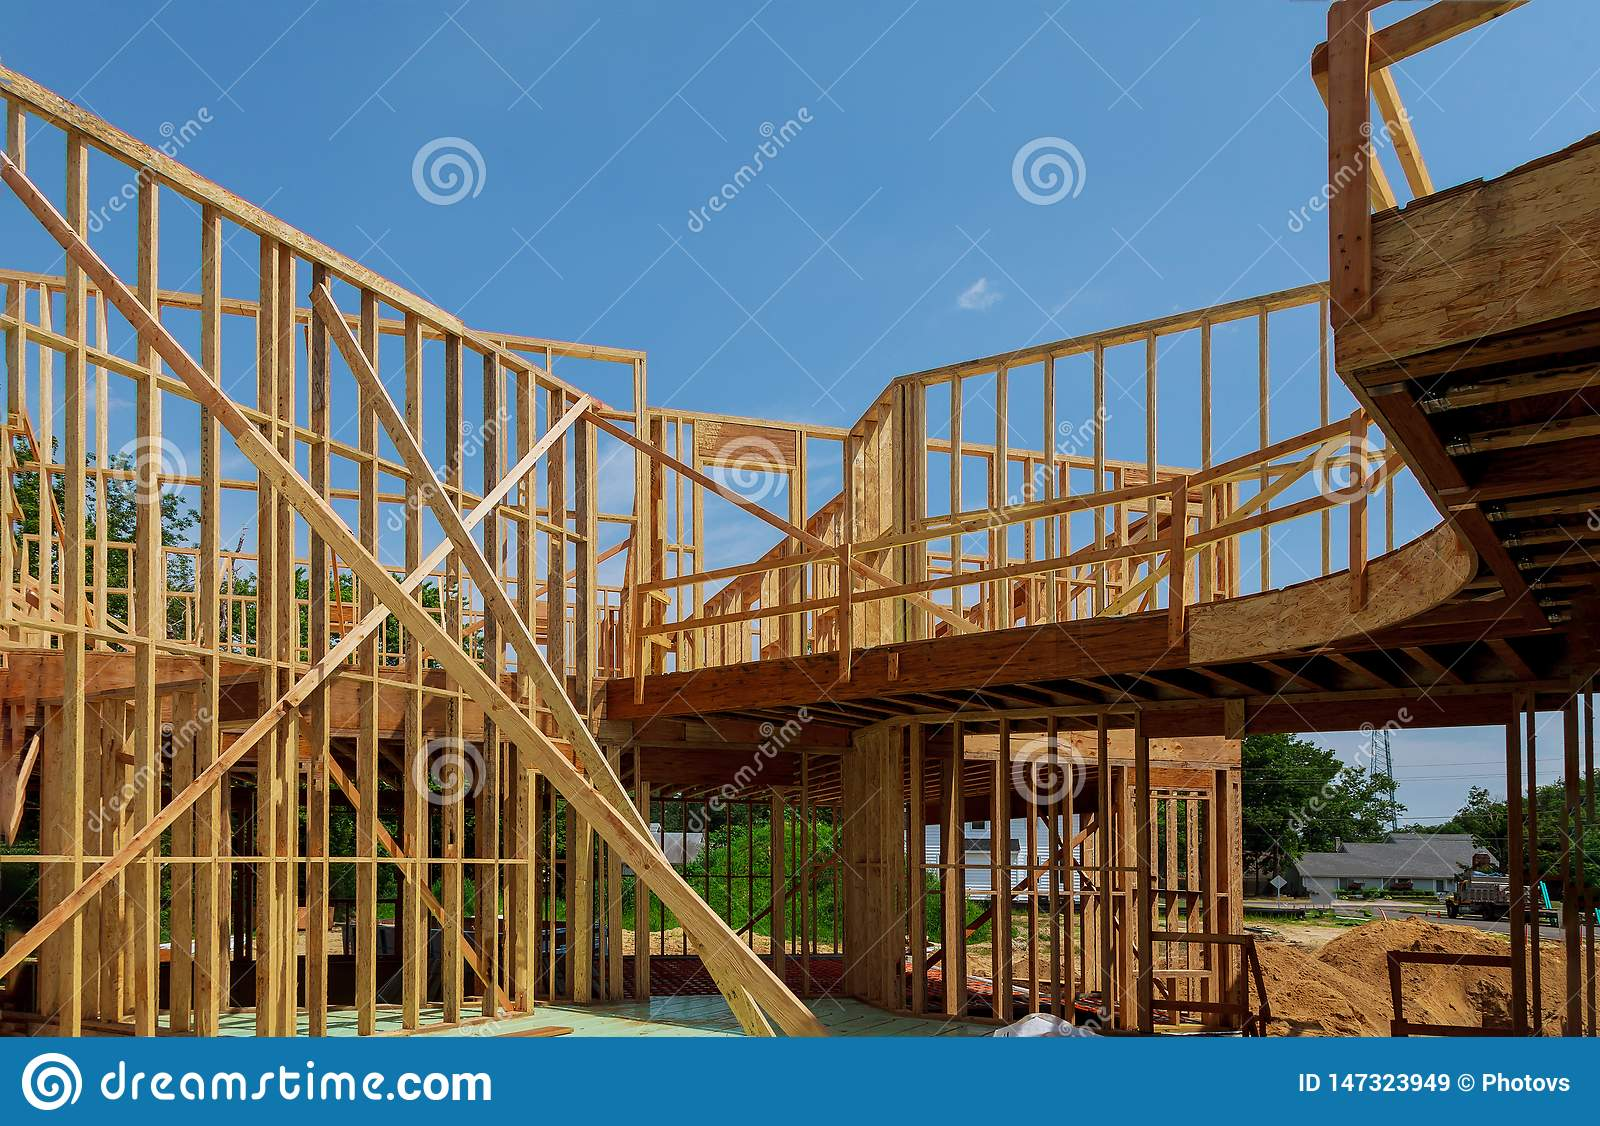 New wooden ecological house from natural materials under construction frame against clear sky from inside